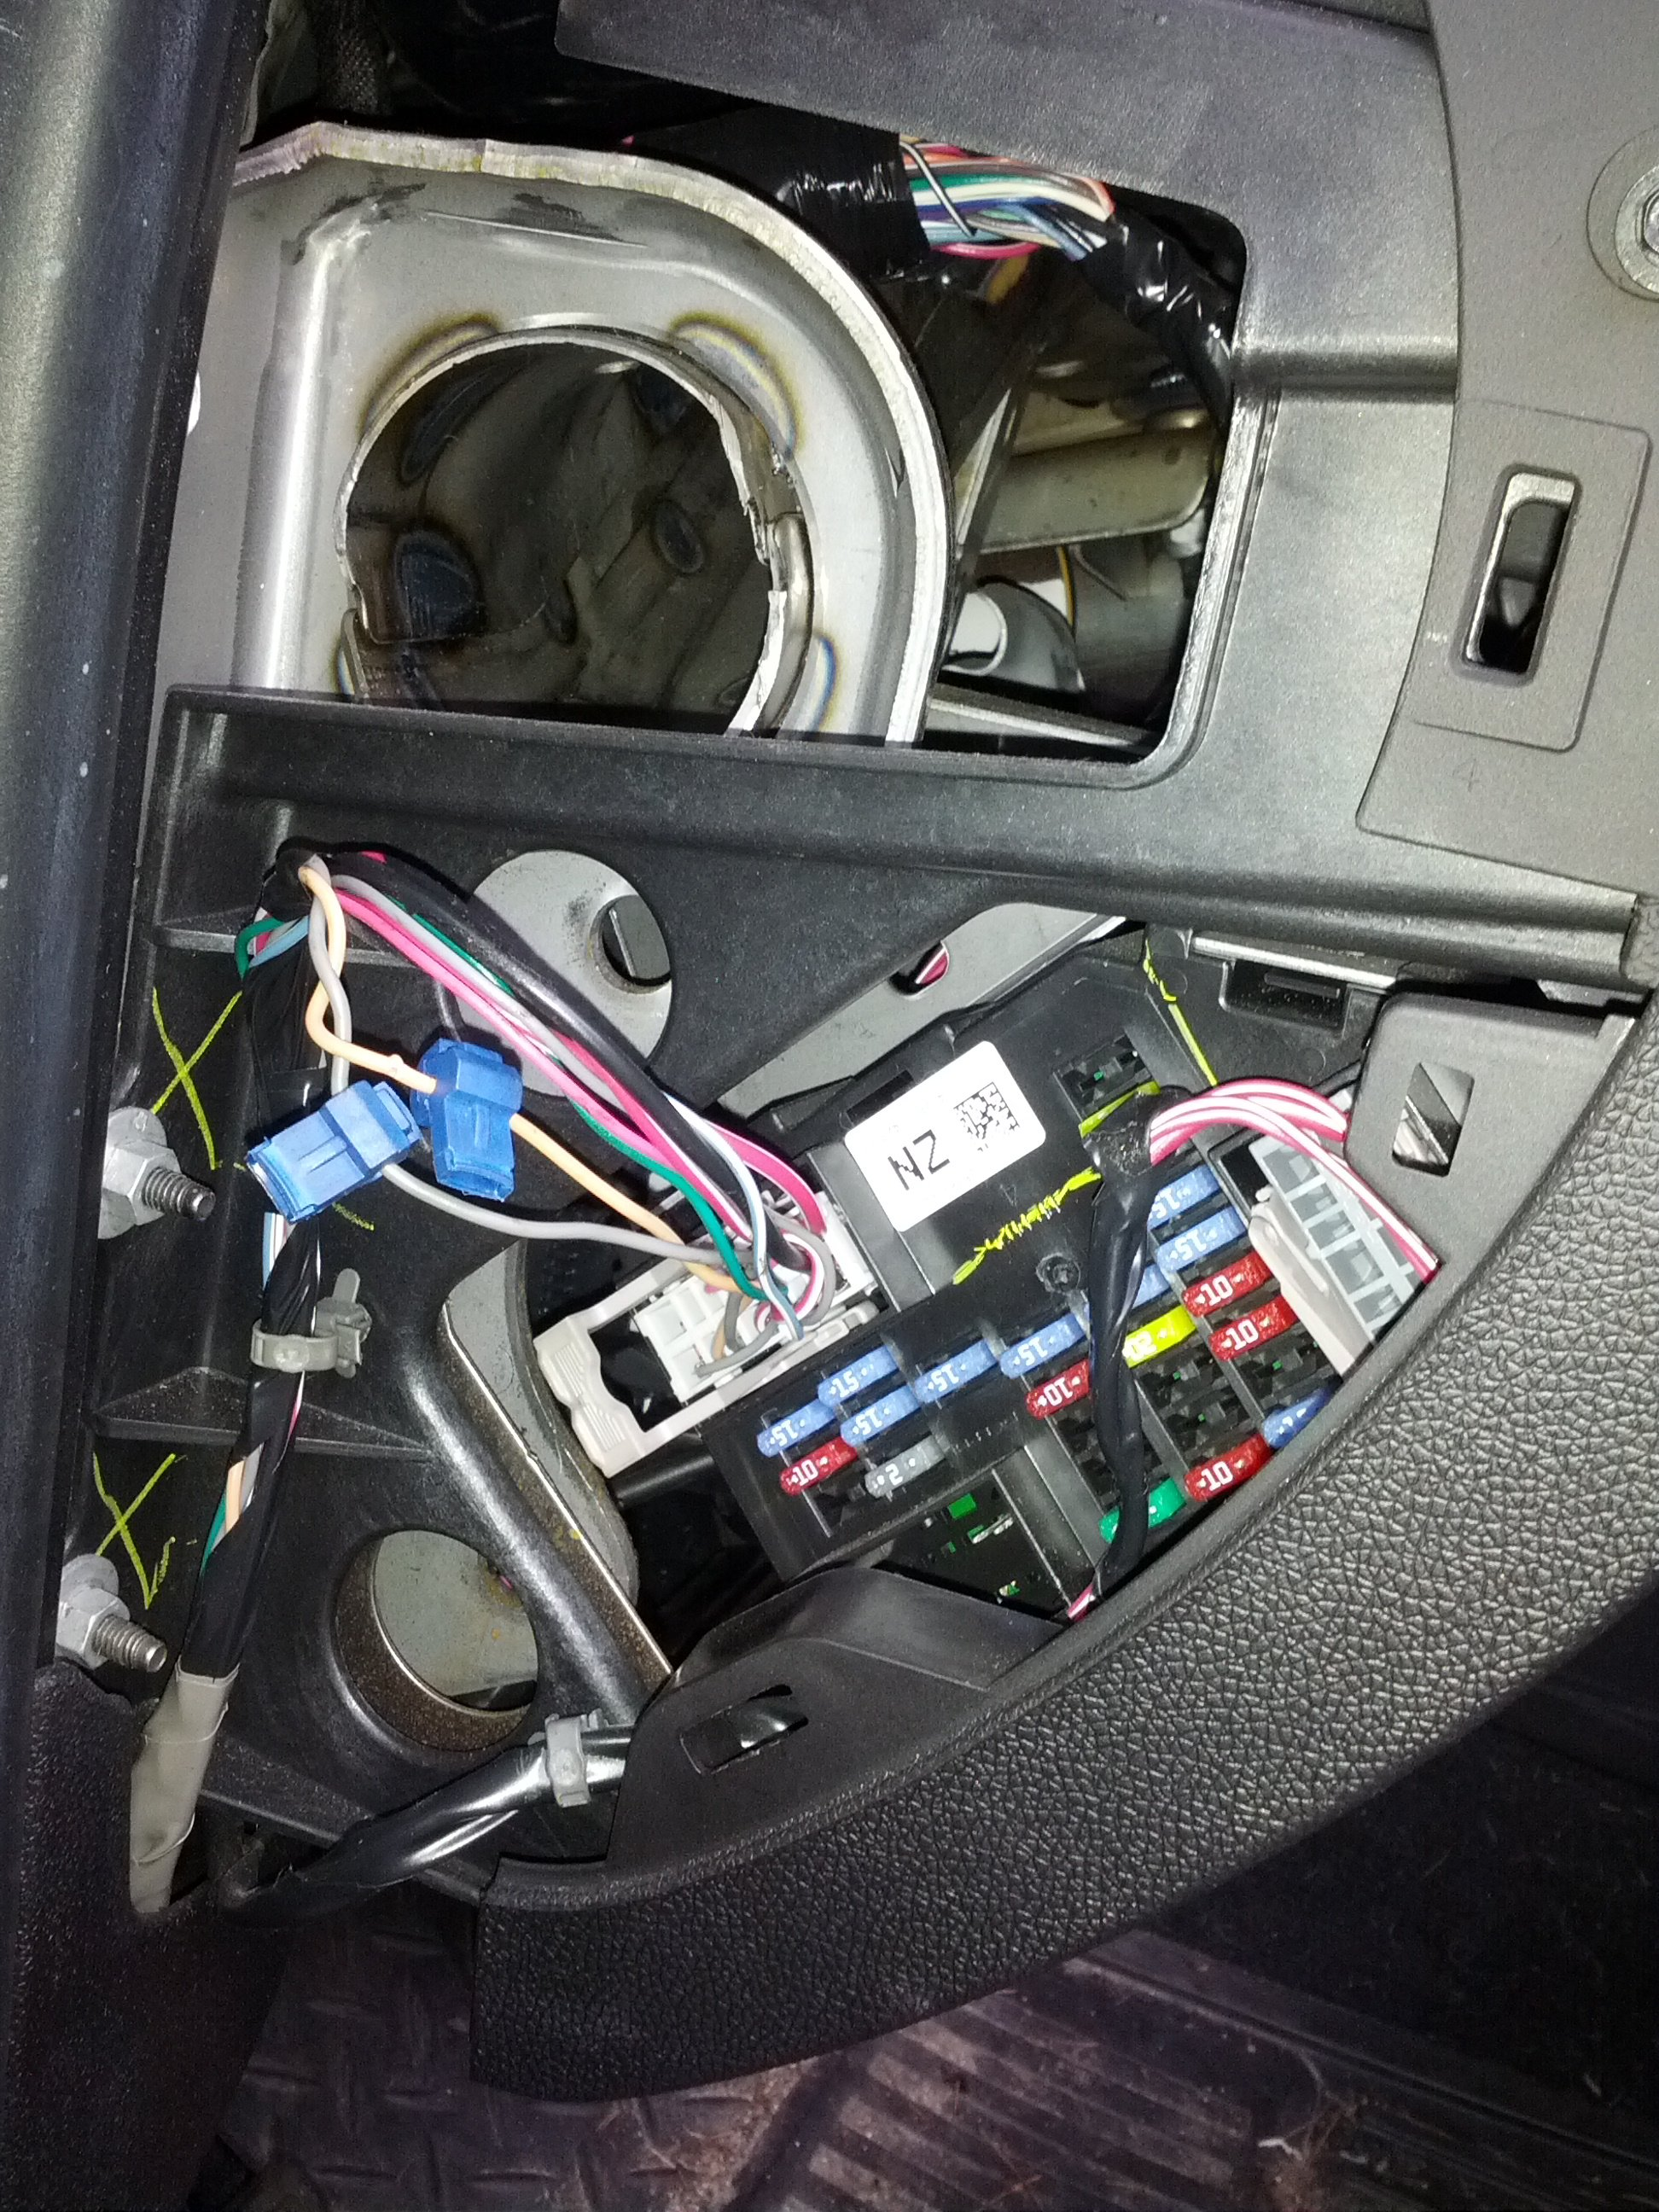 I U0026 39 M Looking For A Wiring Diagram For The Fuse Box On The Driver U0026 39 S Side Door Fuse Panel Of A 2007